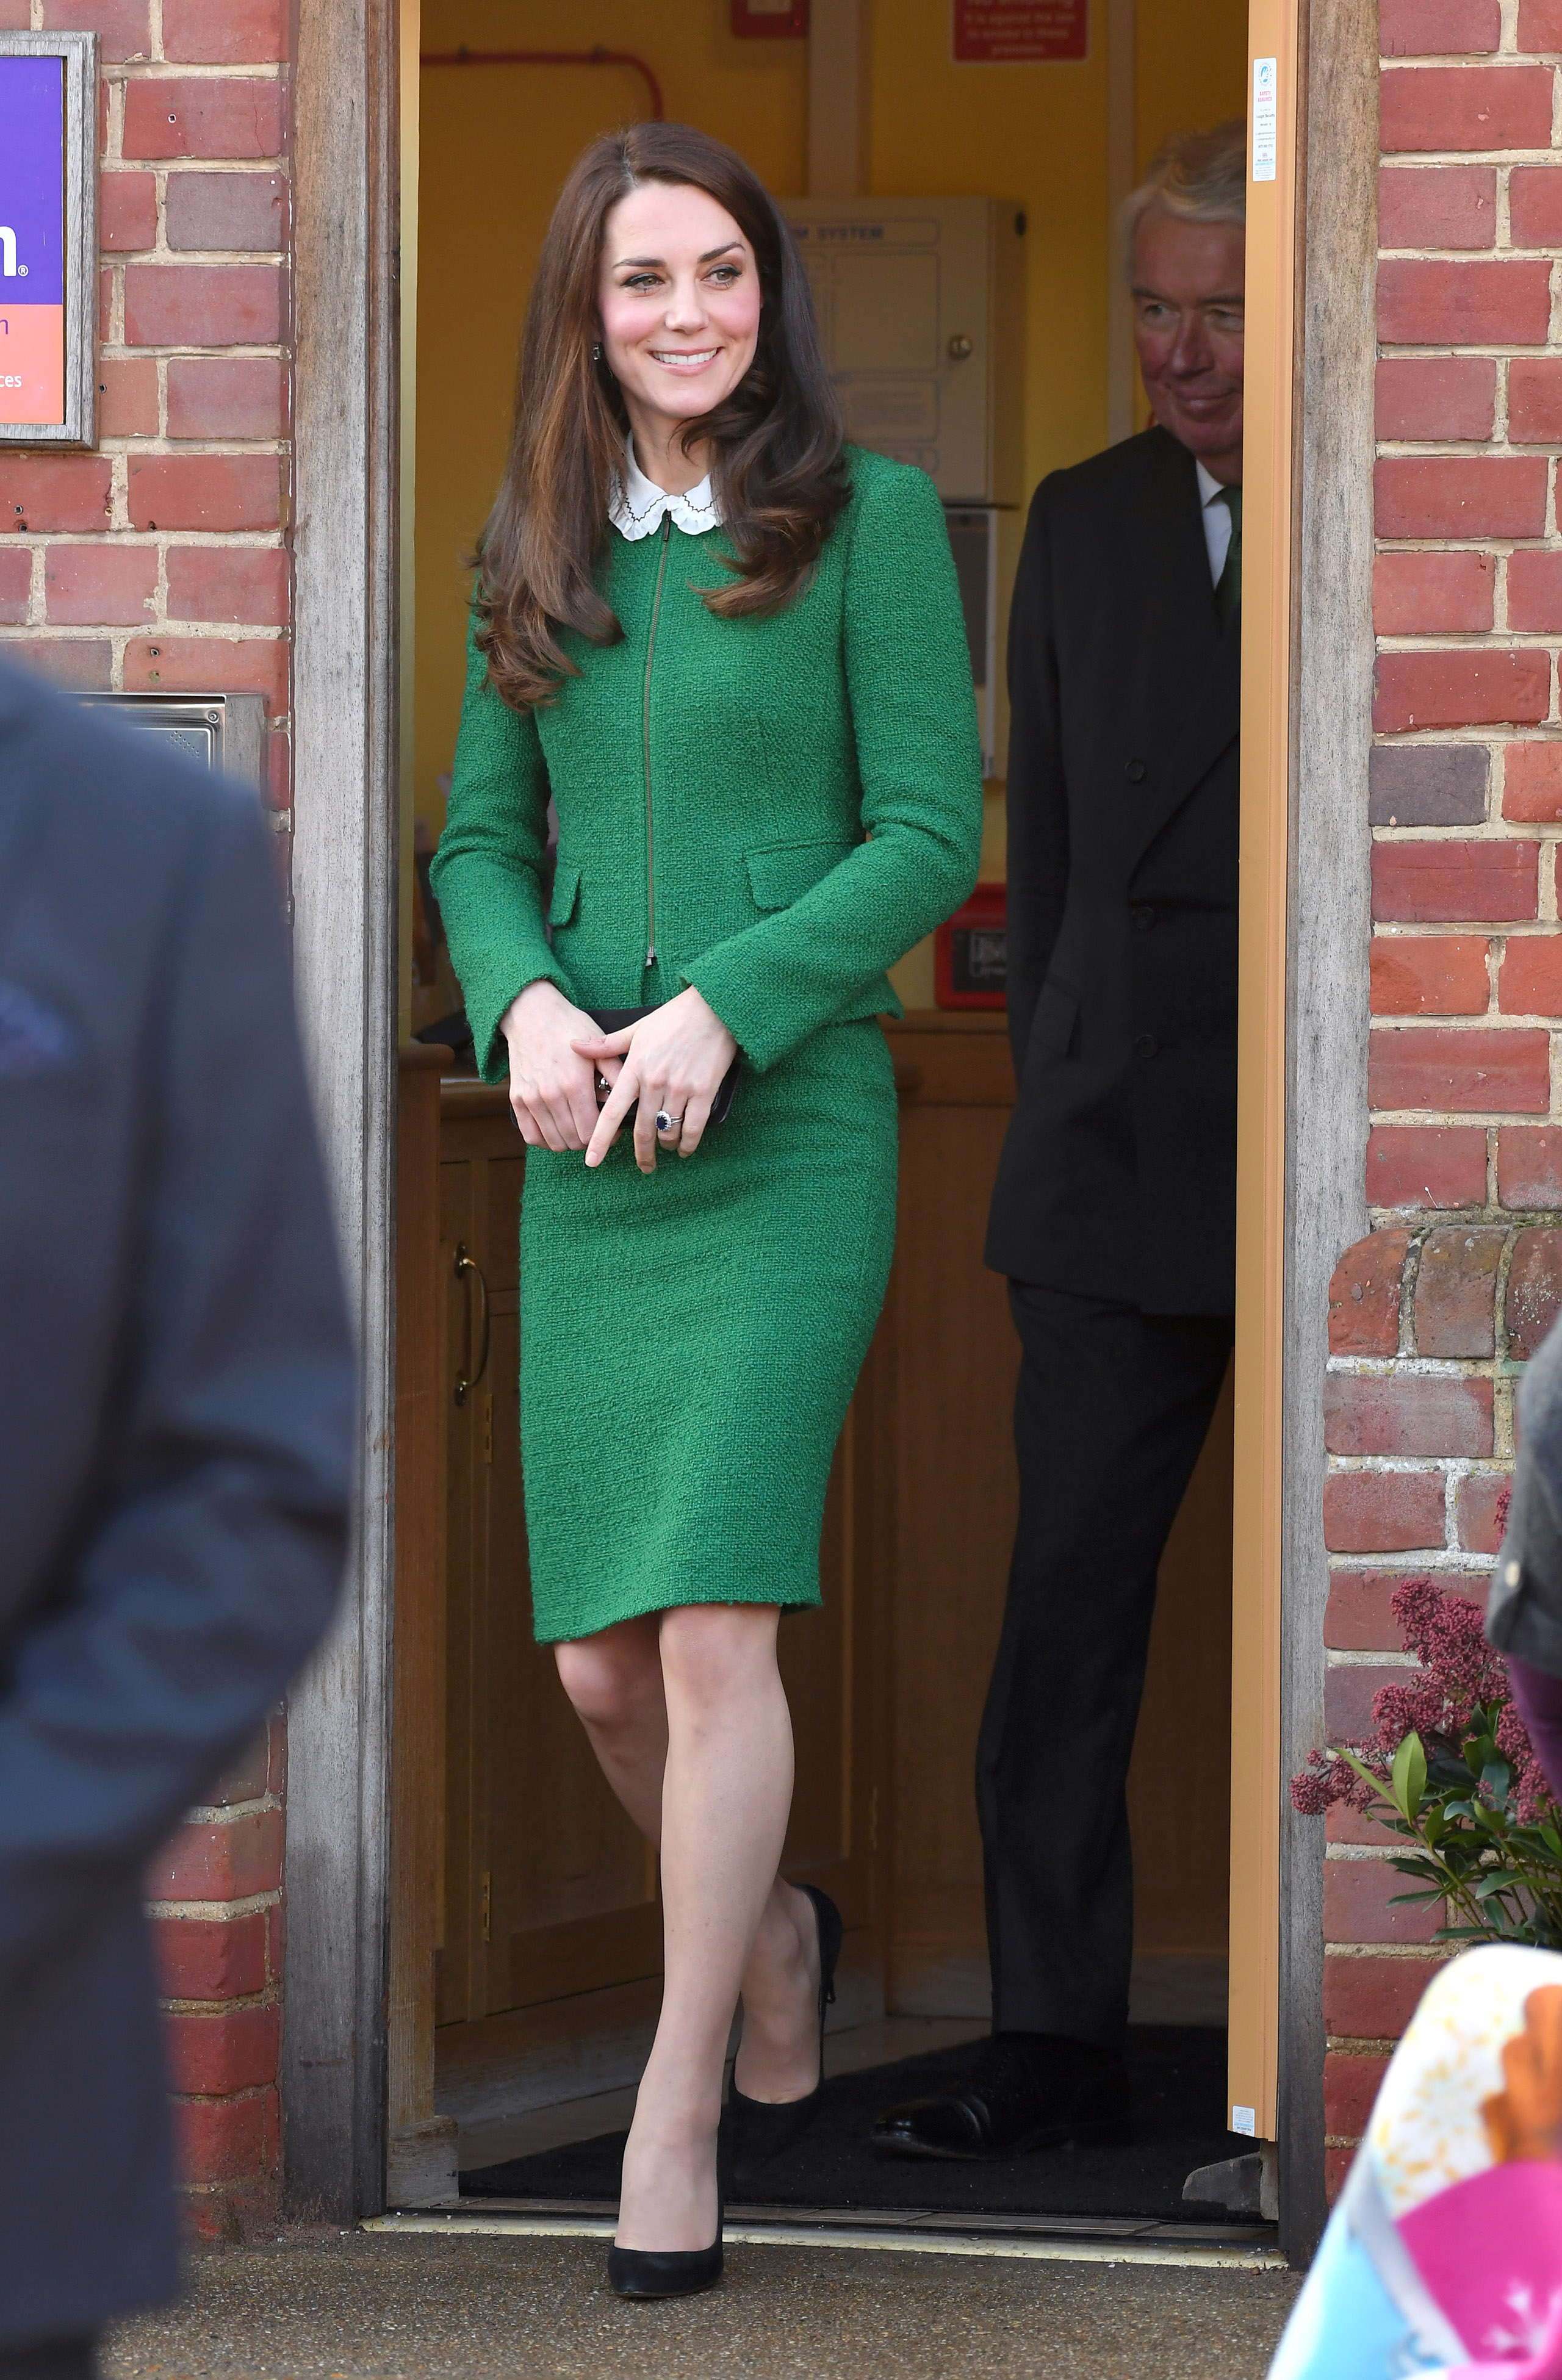 Catherine, Duchess of Cambridge departs after visiting the East Anglia's Children's Hospices in Quidenham, Norfolk, on Jan. 24, 2017.